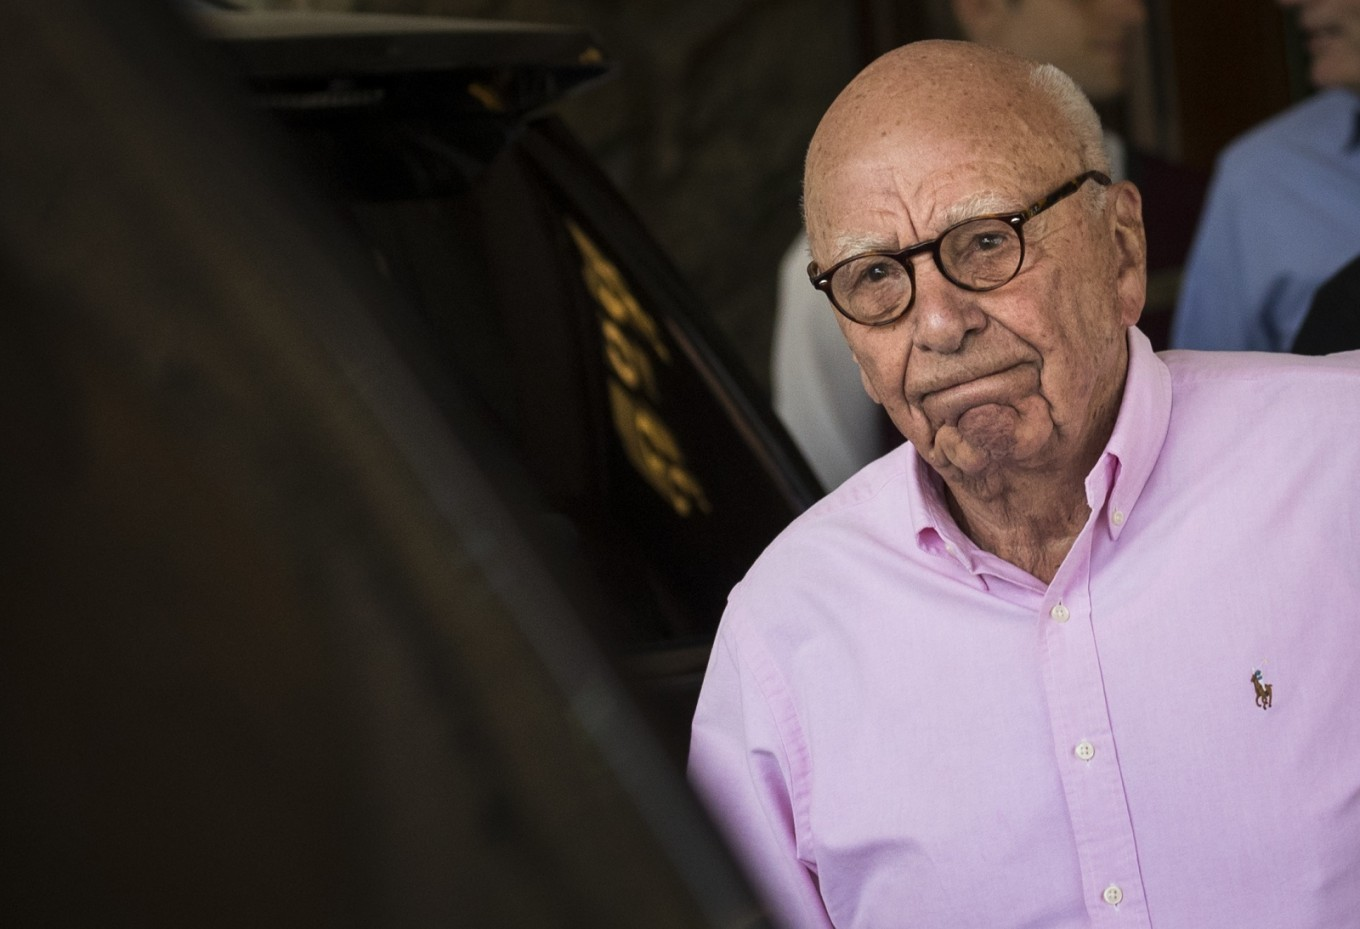 News Corp to cut jobs in UK newspaper, radio business: Memo